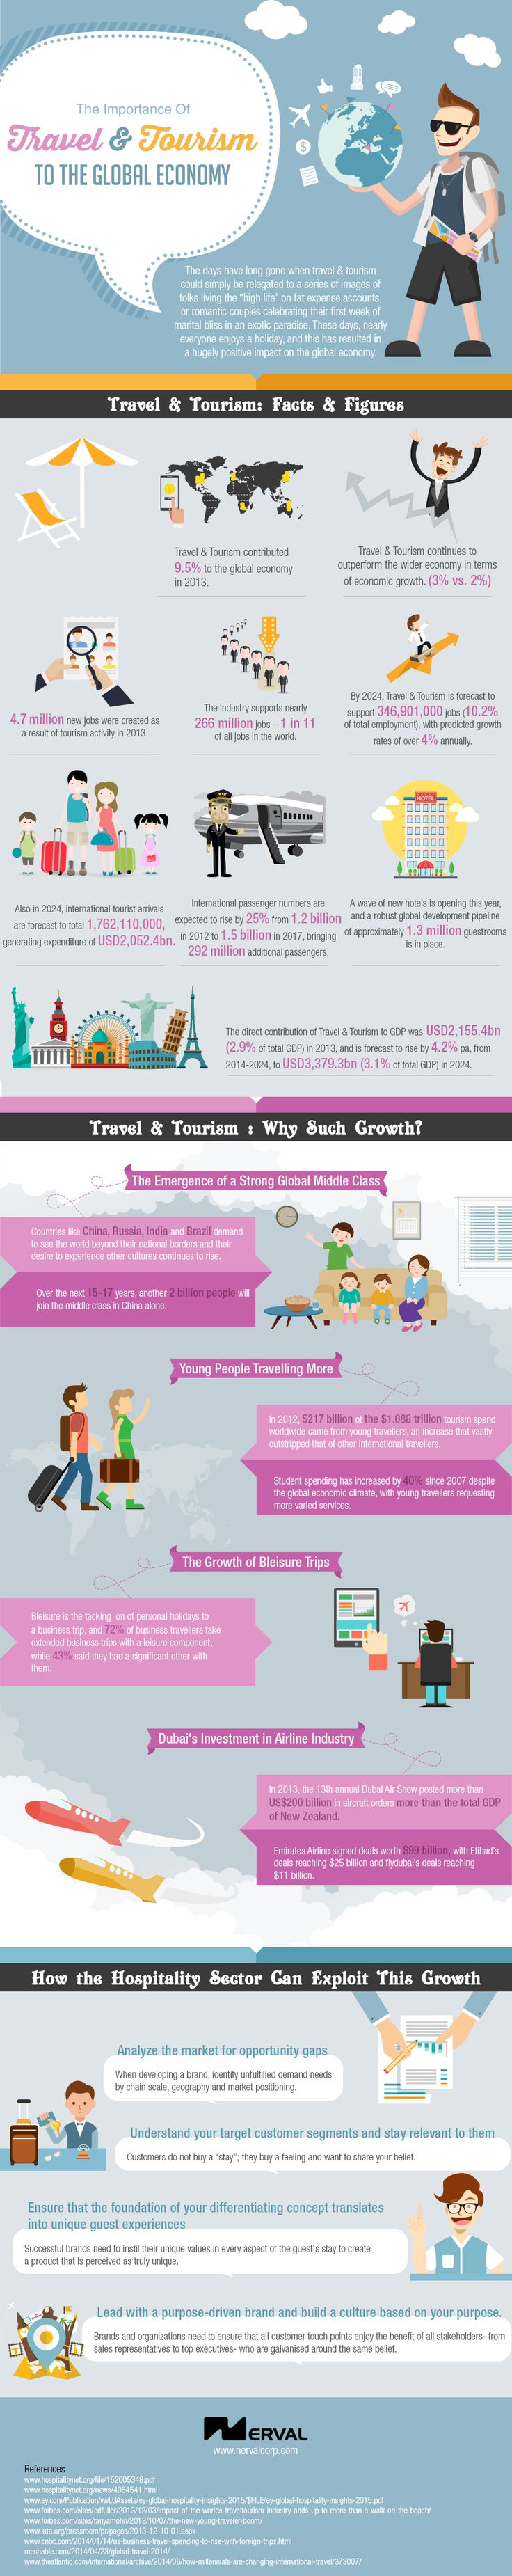 78 best images about tourism hospitality and recreation careers the importance of travel tourism to the global economy